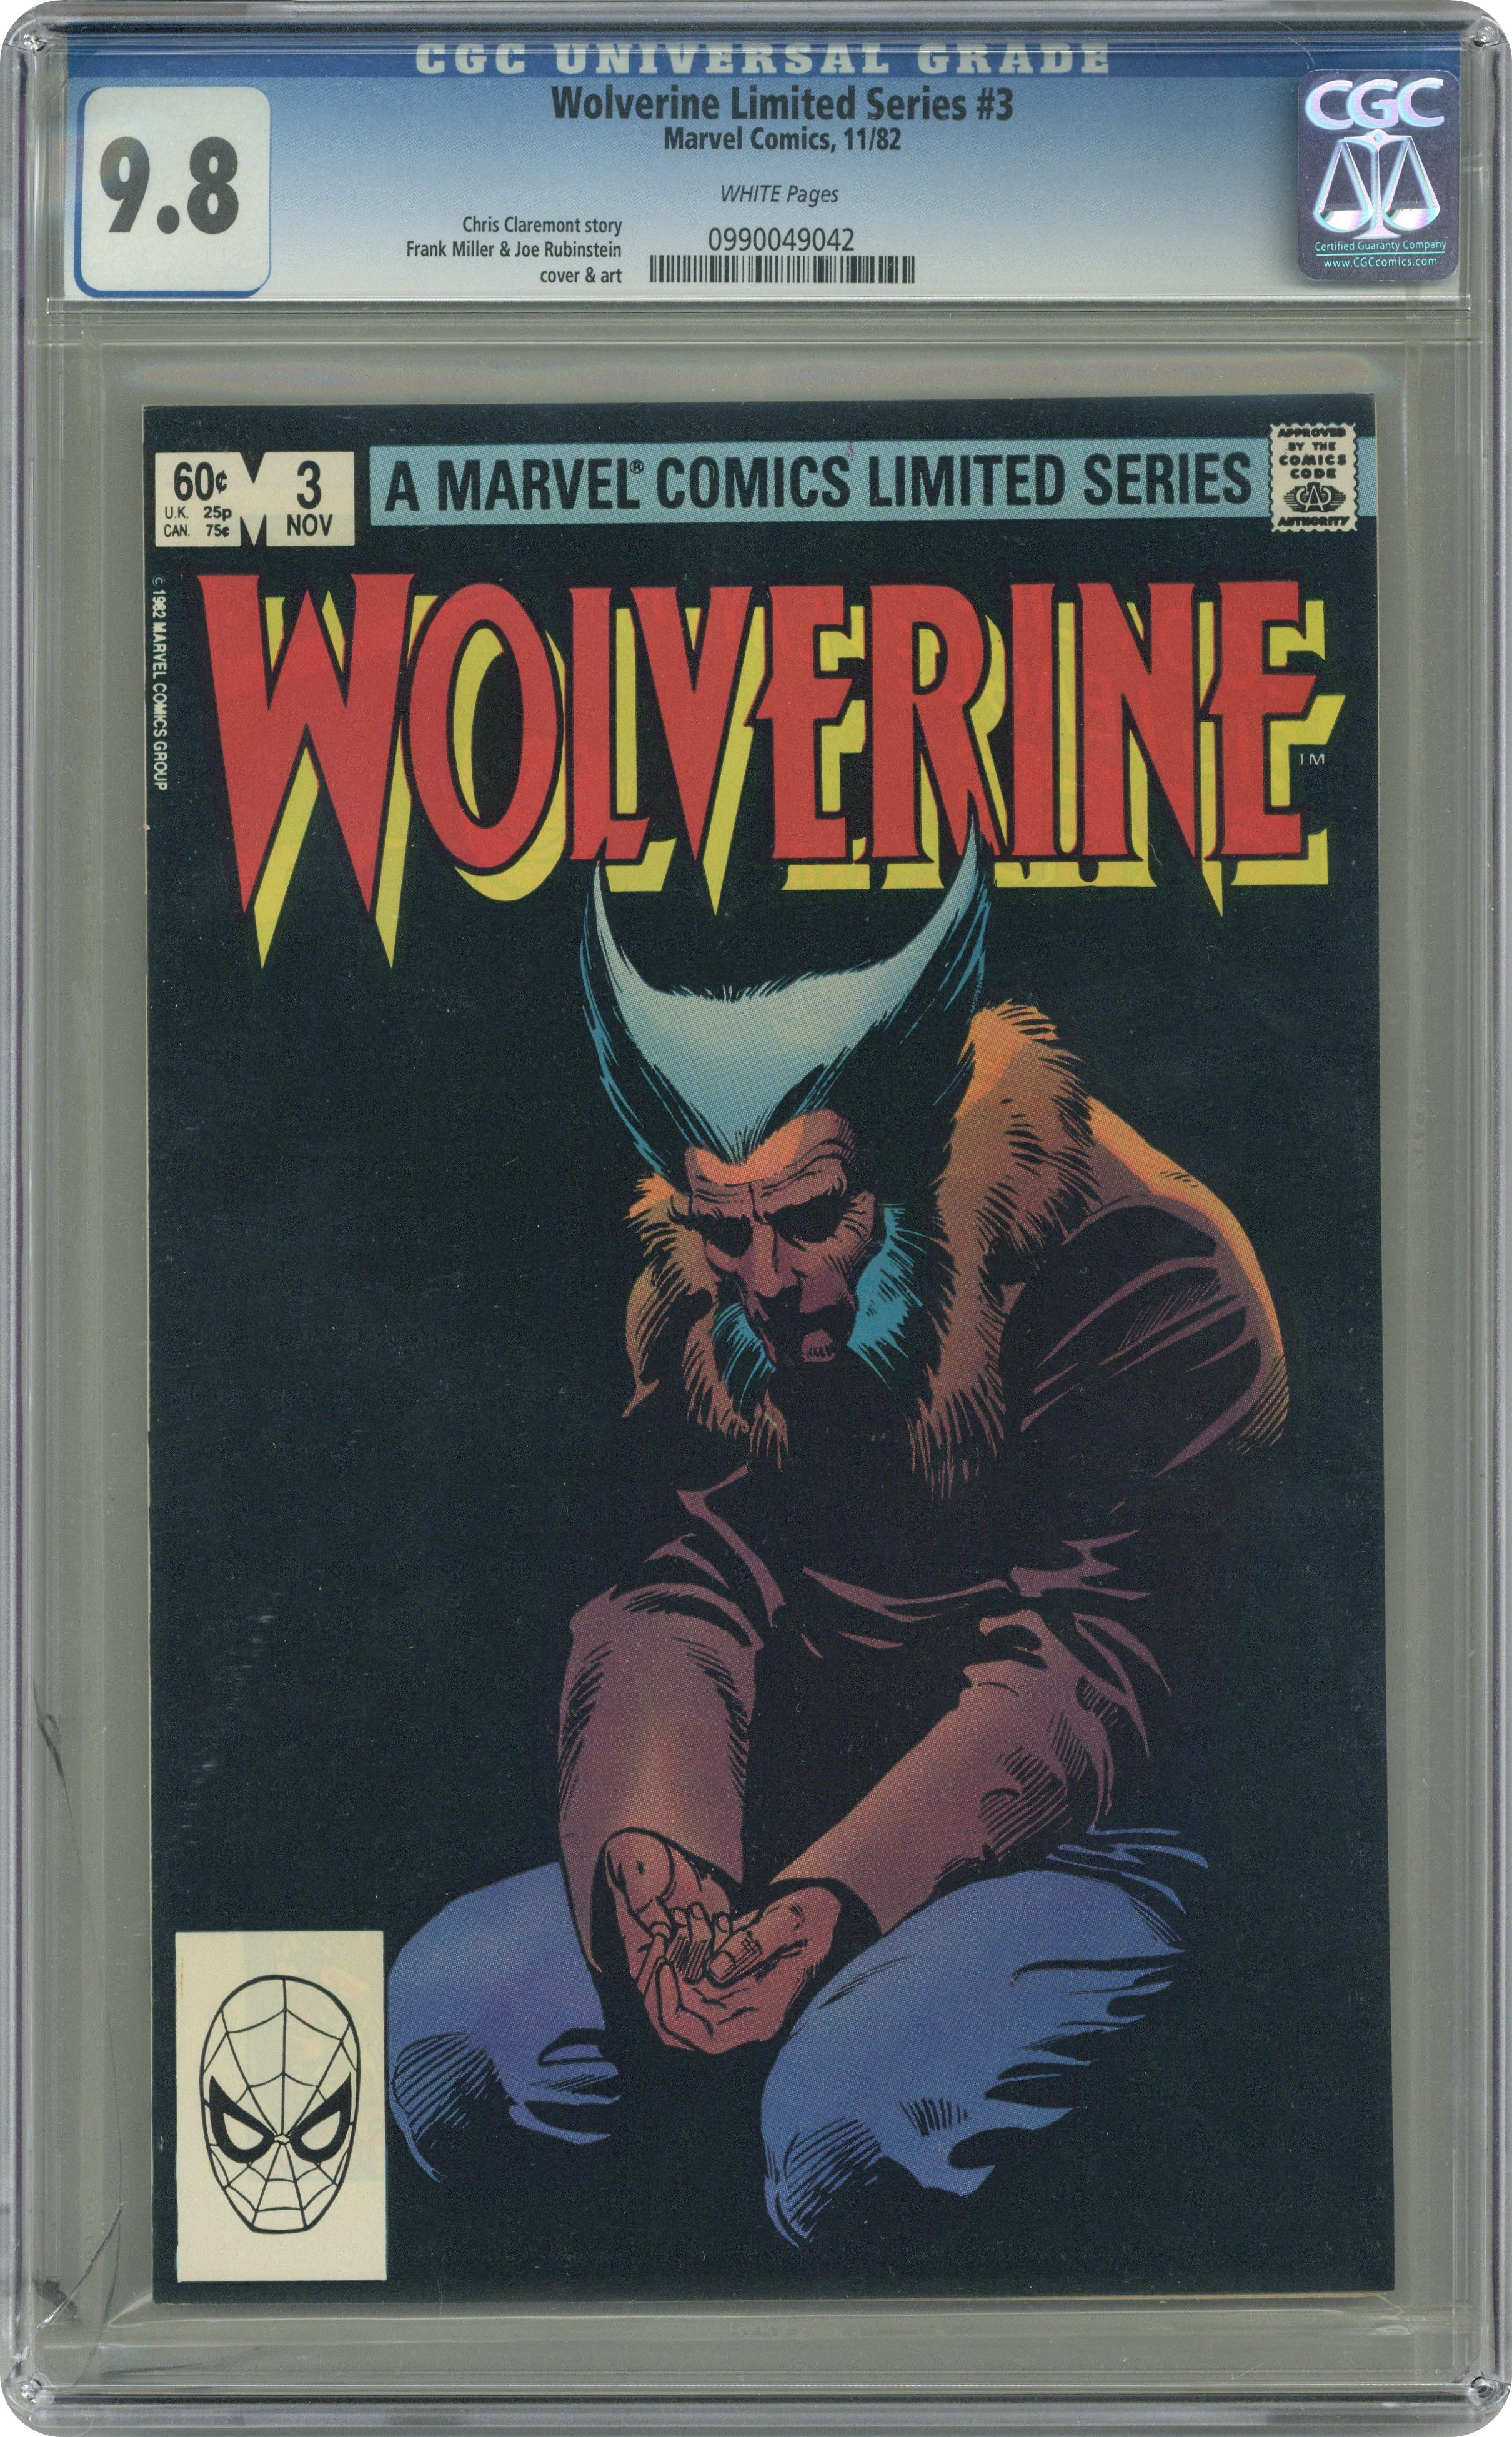 Wolverine Limited Series #1 CGC 7.0 1982 First Solo Comic WHITE PAGES